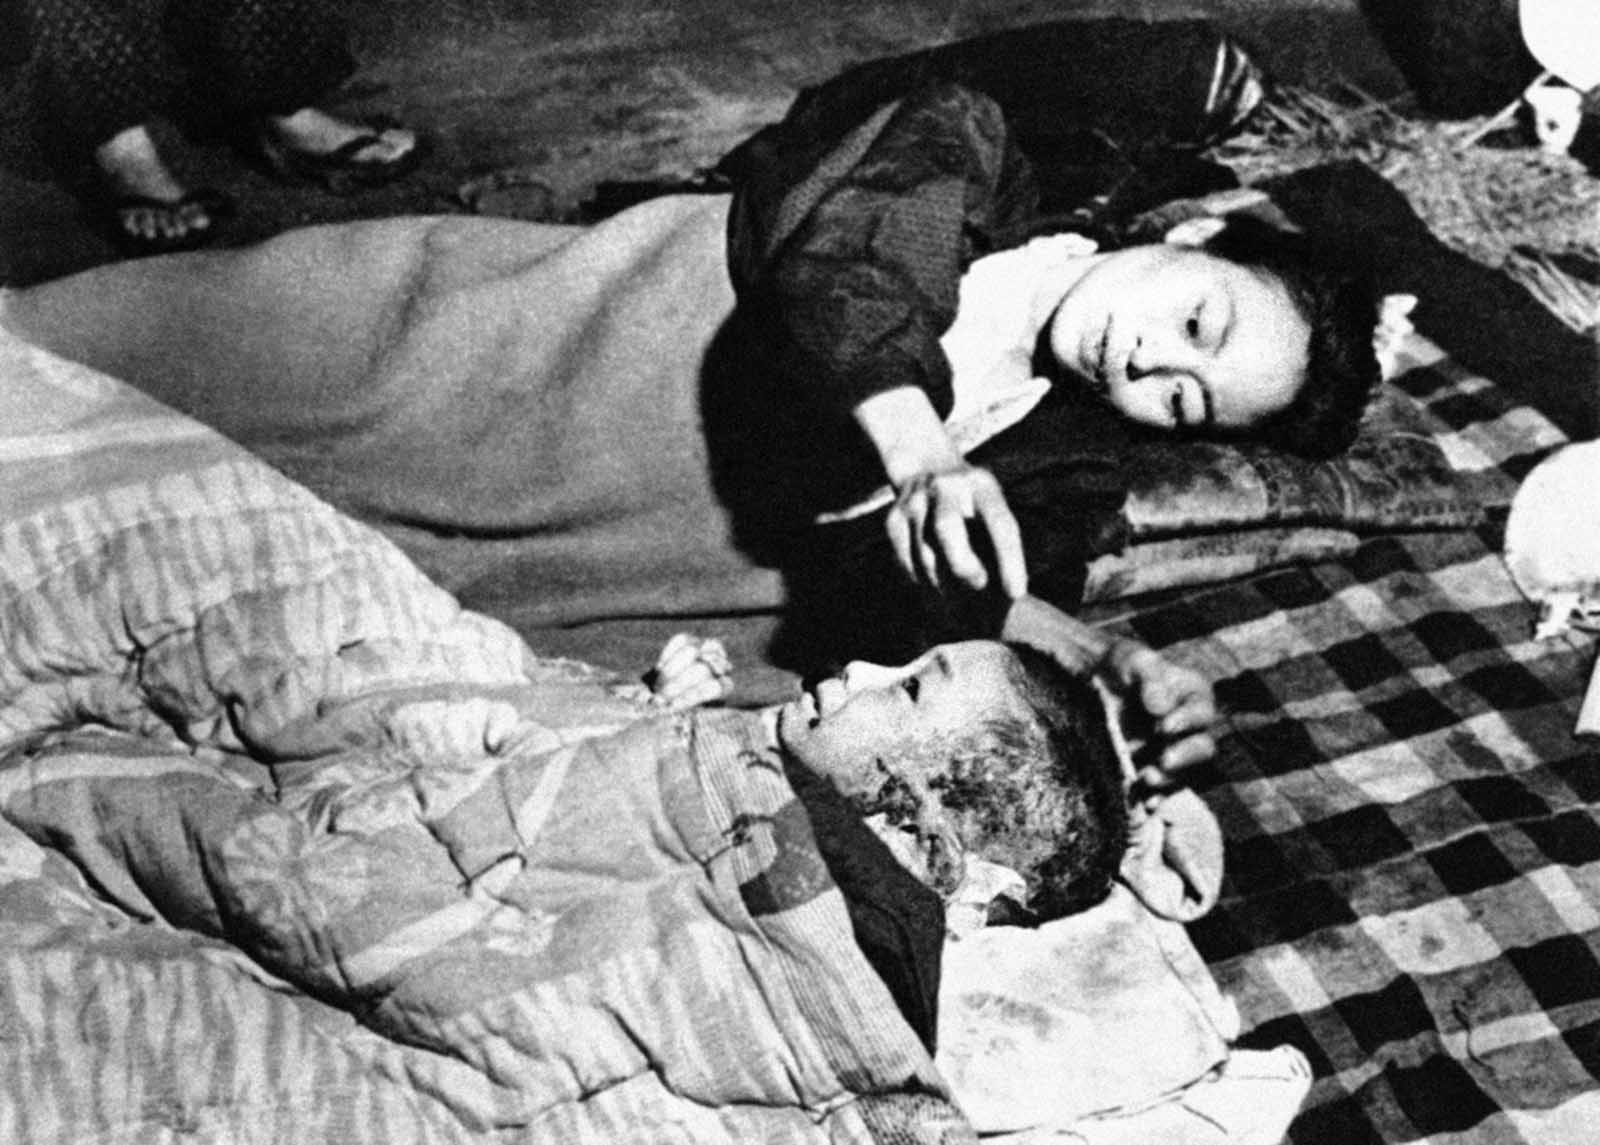 A Japanese woman and her child, casualties in the atomic bombing of Hiroshima, lie on a blanket on the floor of a damaged bank building converted into a hospital and located near the center of the devastated town, on October 6, 1945.